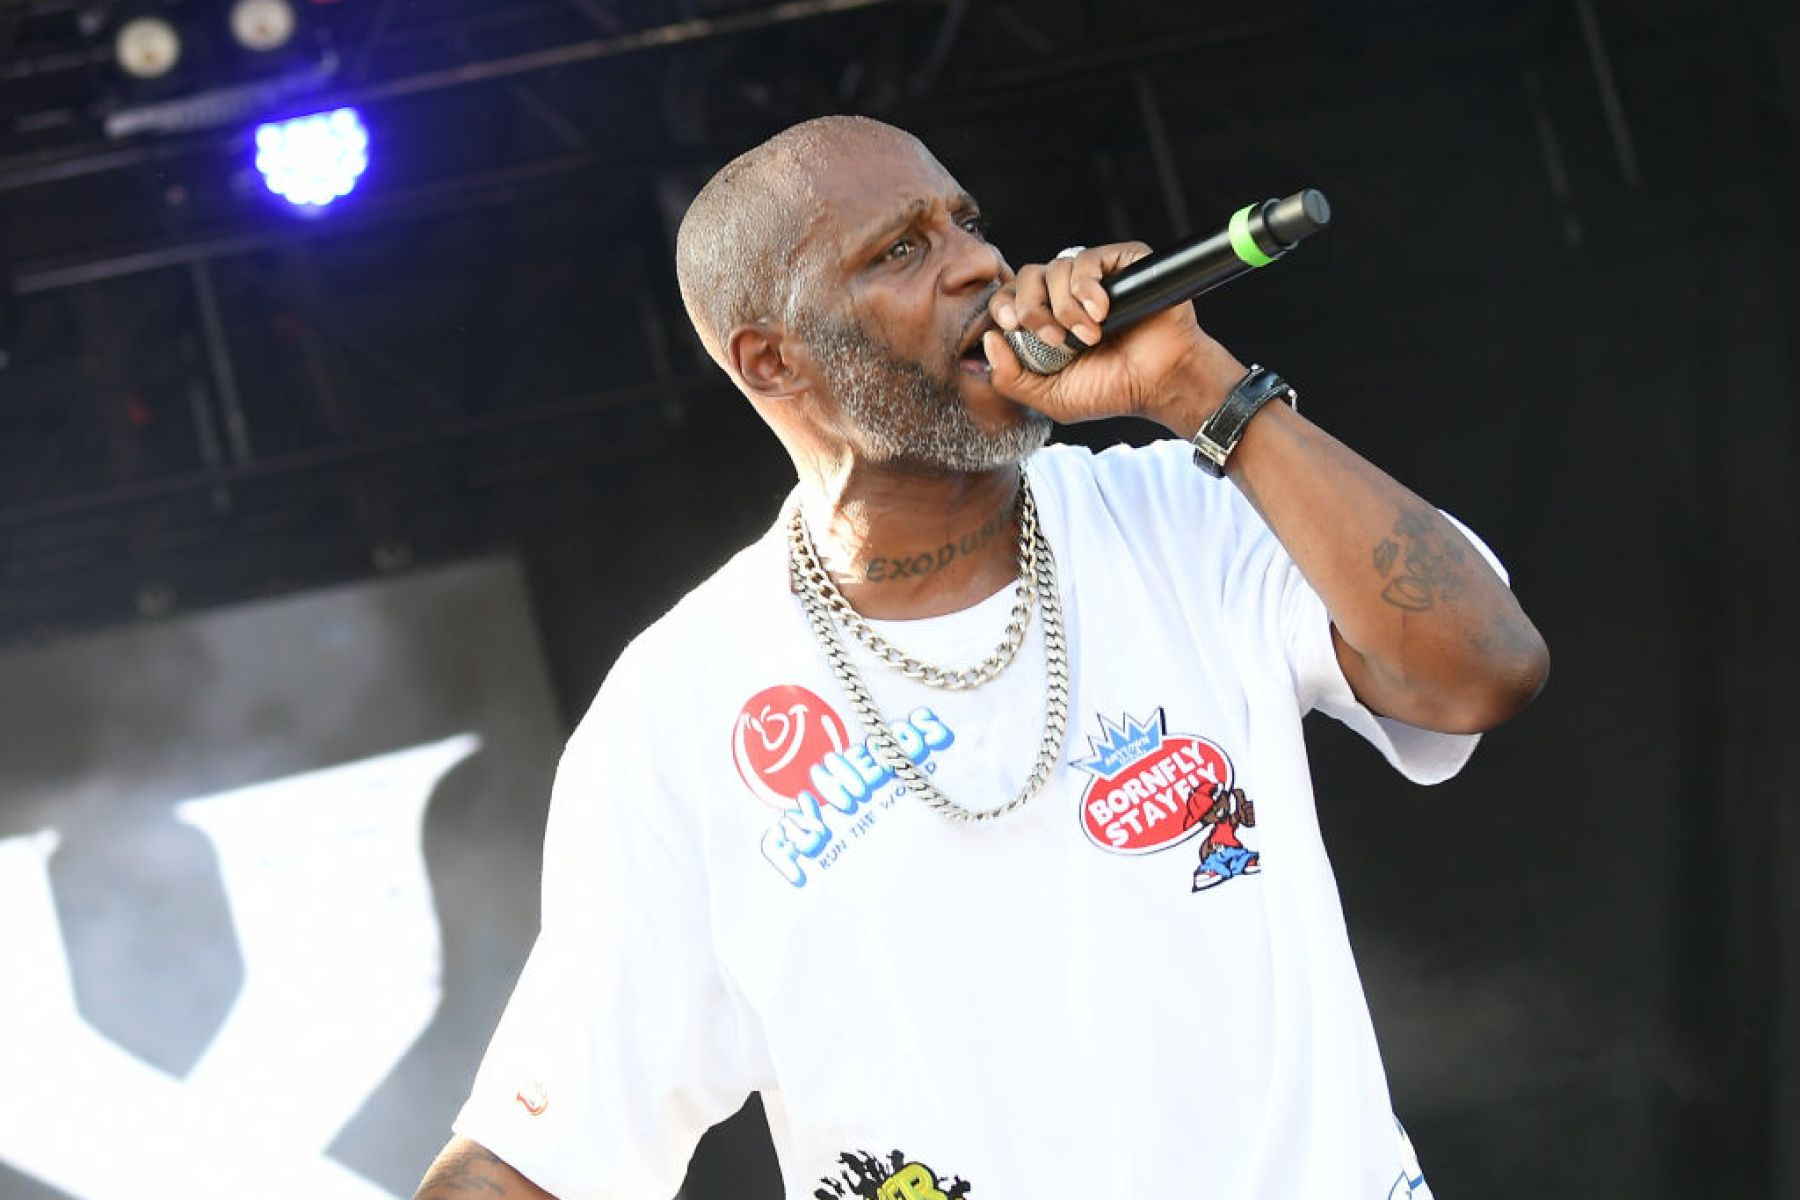 ATLANTA, GEORGIA - SEPTEMBER 08:  Rapper DMX performs onstage during 10th Annual ONE Musicfest at Centennial Olympic Park on September 08, 2019 in Atlanta, Georgia. (Photo by Paras Griffin/Getty Images)